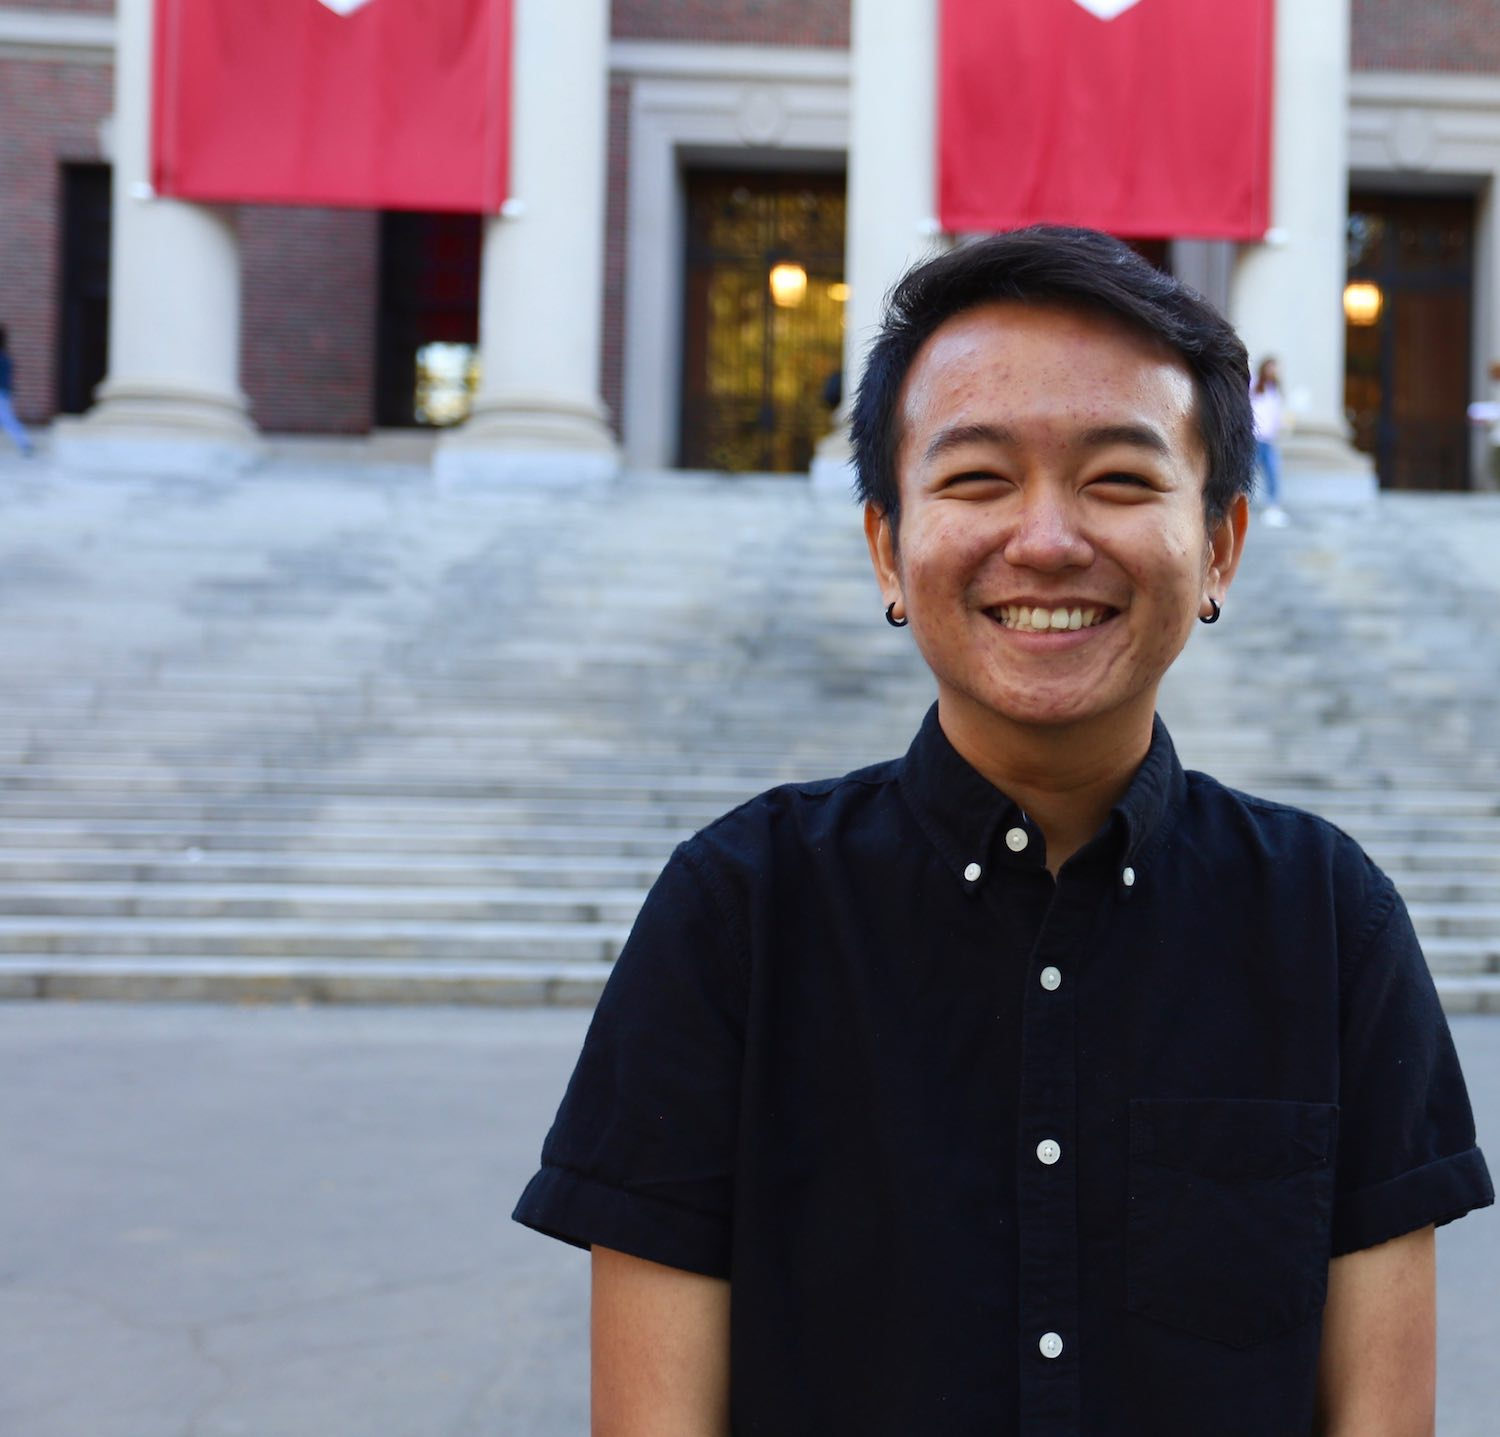 Student At Harvard Defends  Affirmative Action